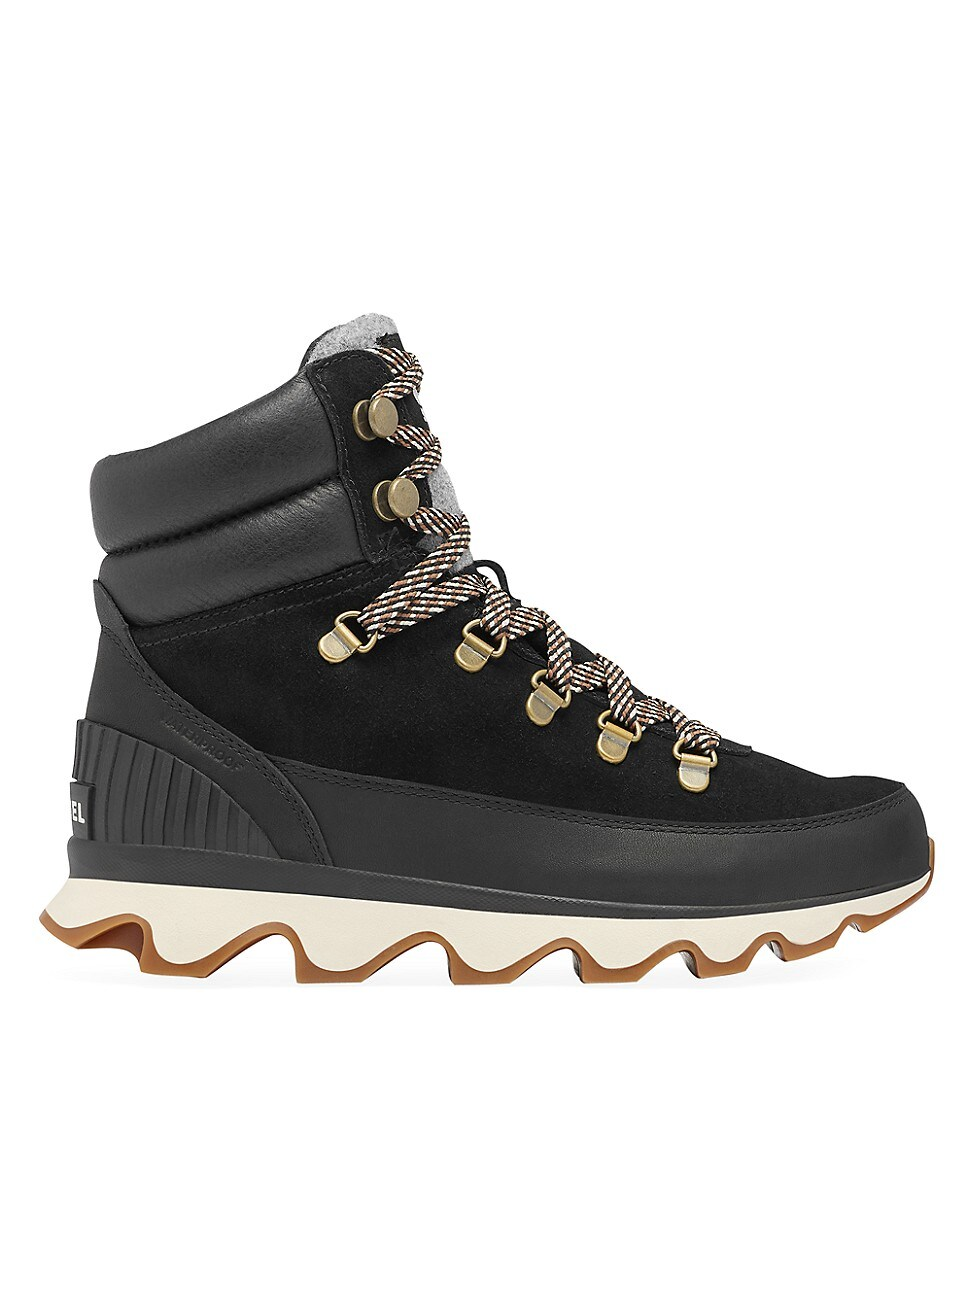 Sorel WOMEN'S KINETIC CONQUEST LEATHER & SUEDE HIKING BOOTS